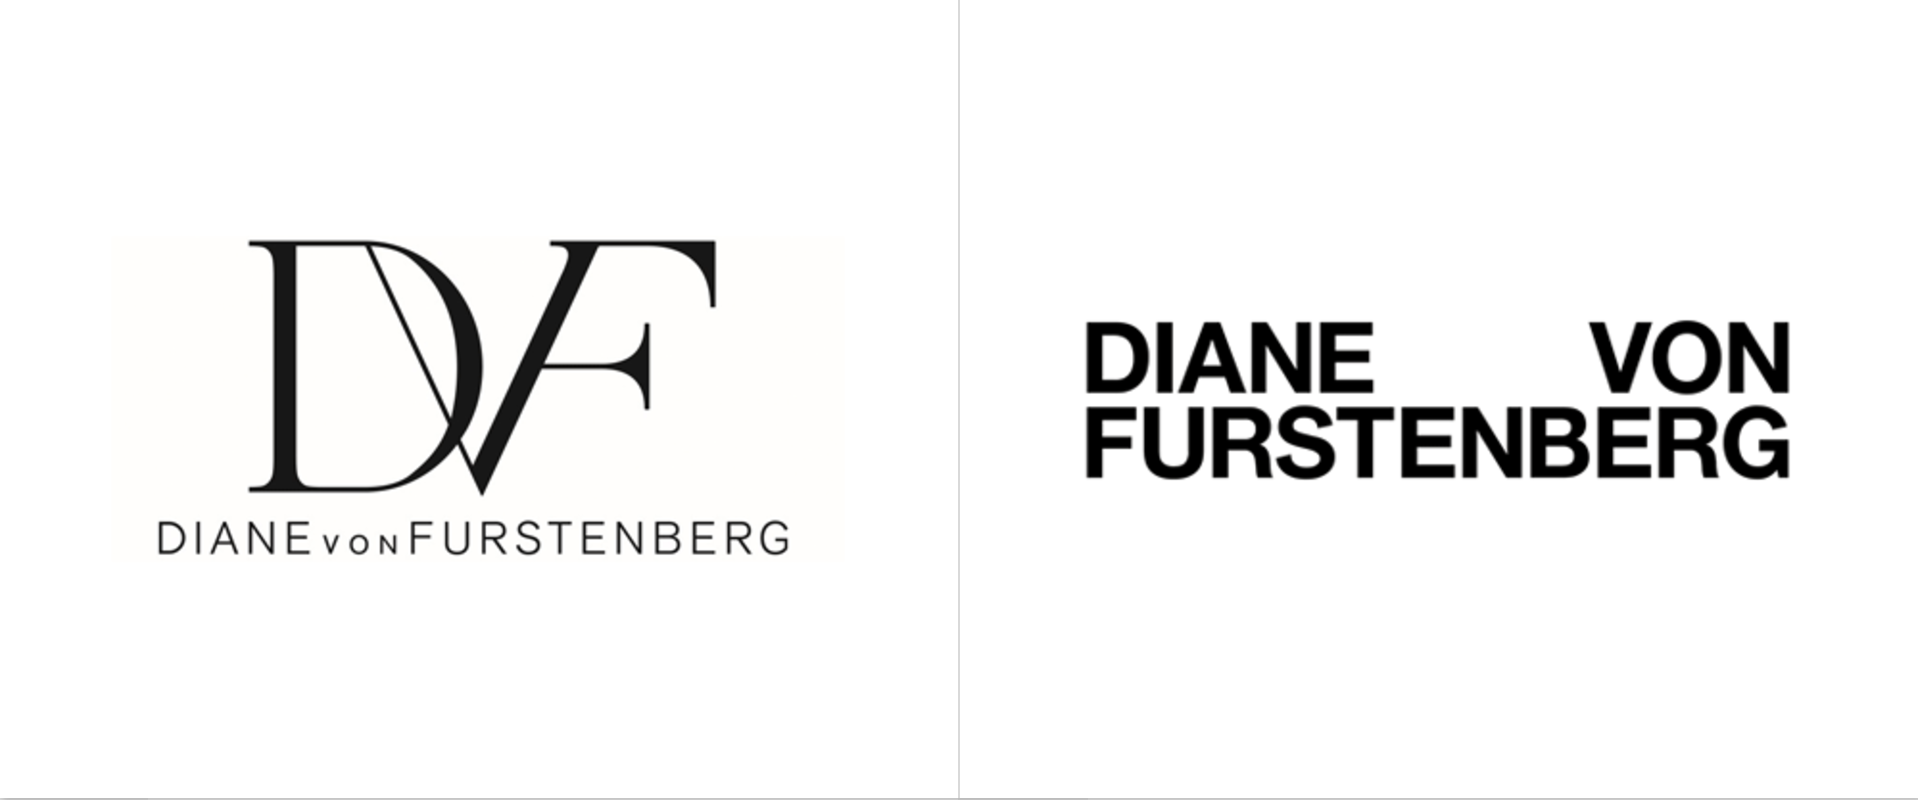 Diane von Furstenberg: Old vs. New Logo. Photo courtesy: Jonny Lu Studio